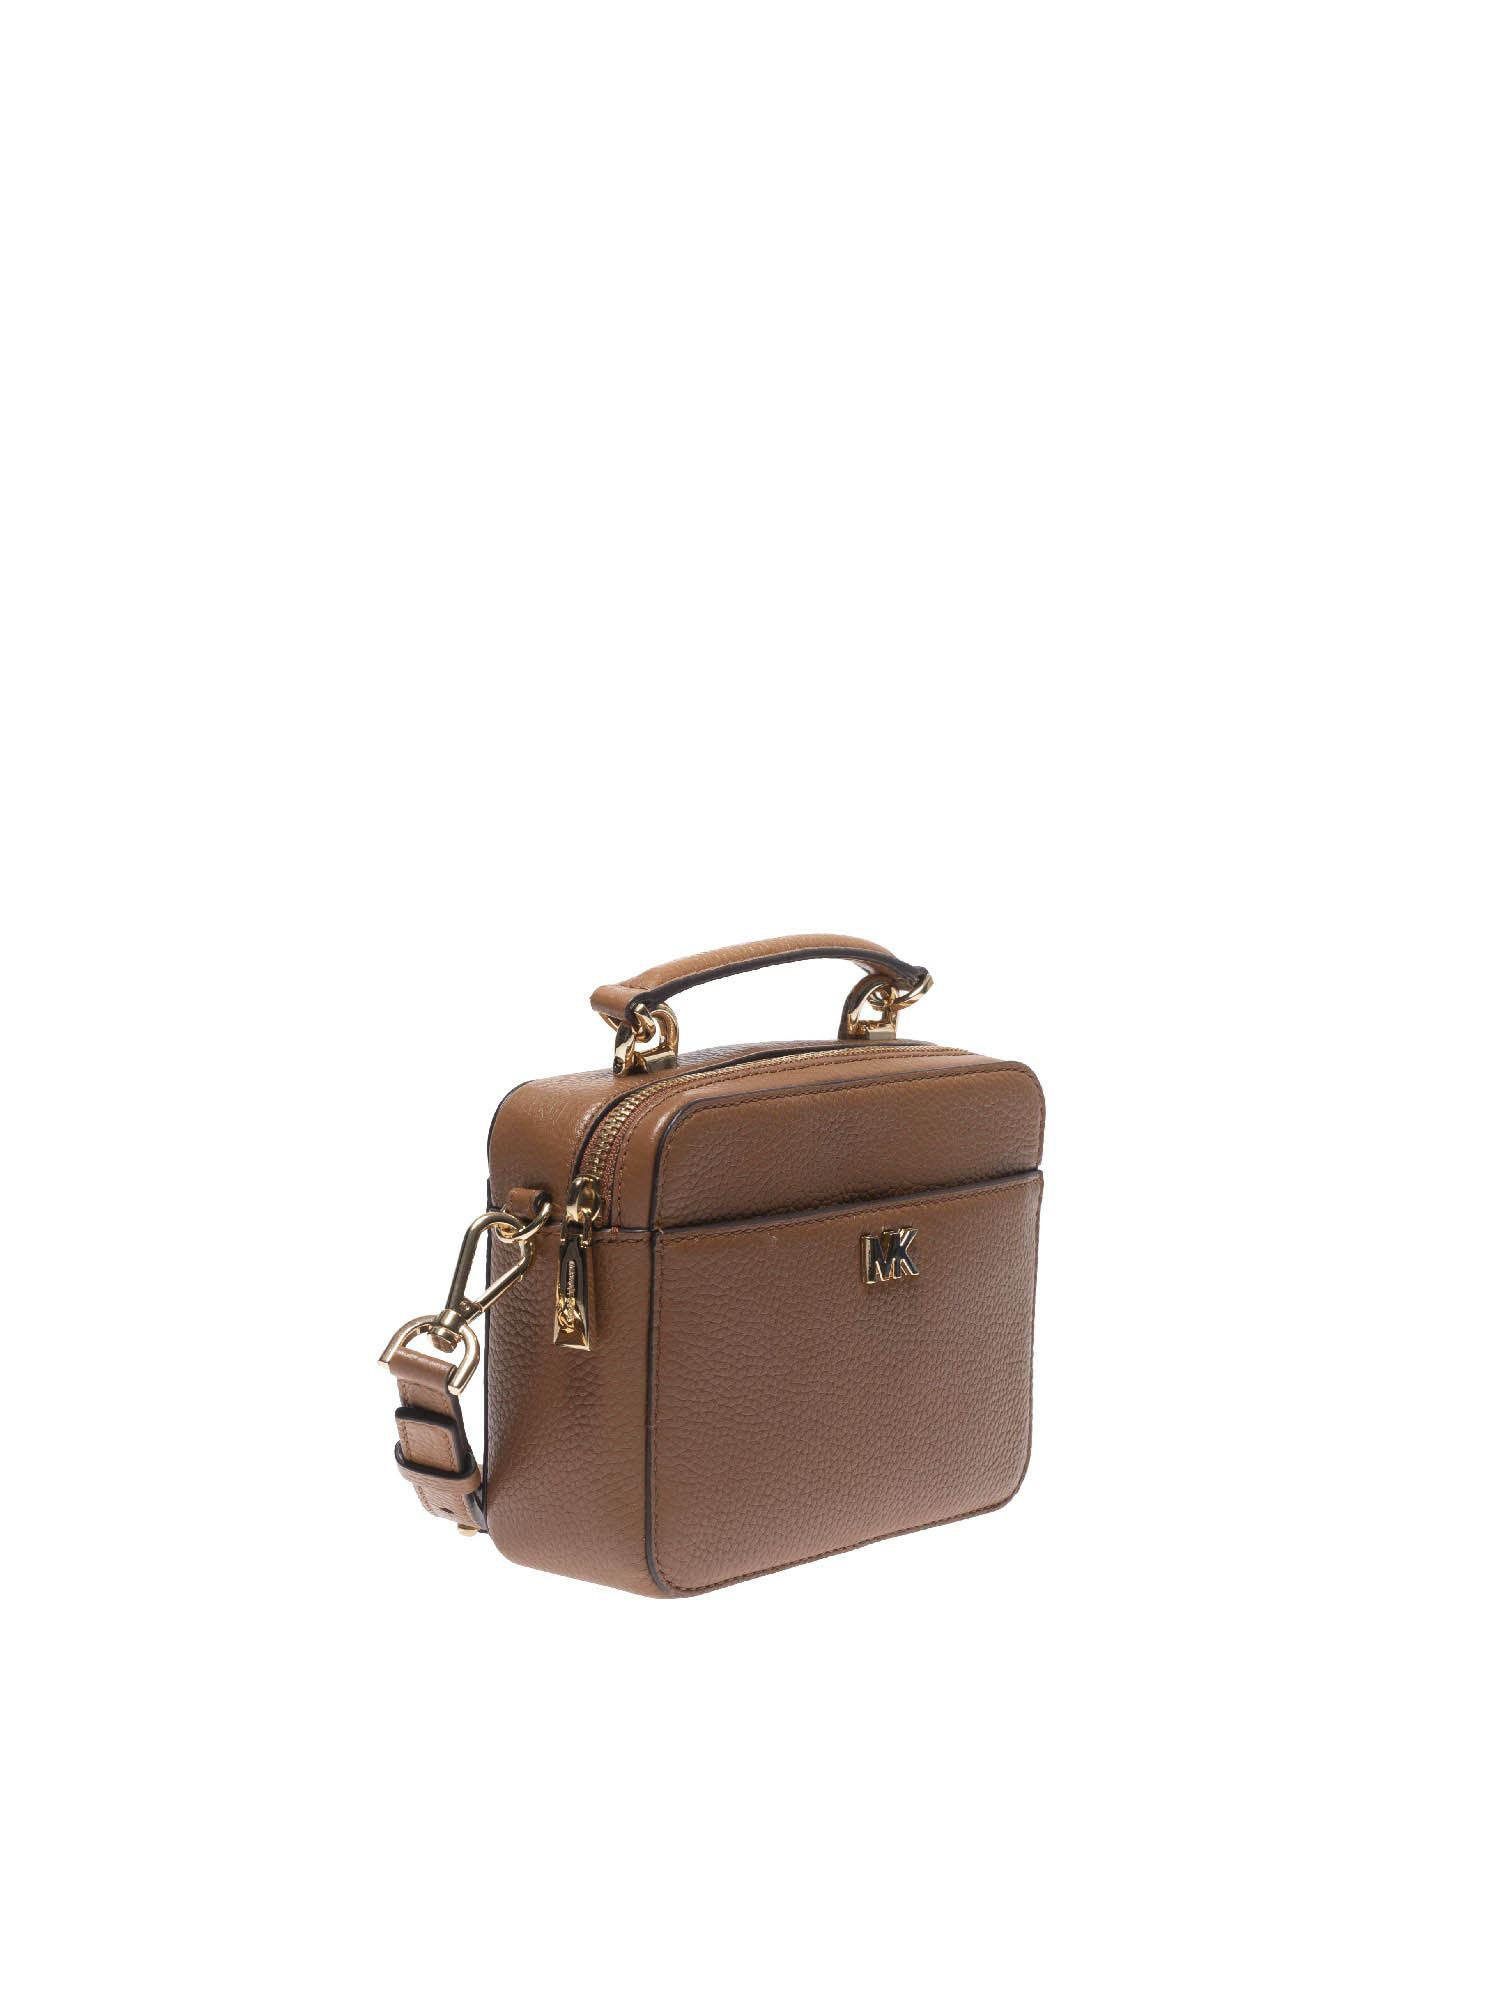 ca26d49dd4 Lyst - Michael Kors Brown Leather Shoulder Bag With Golden Logo in Brown